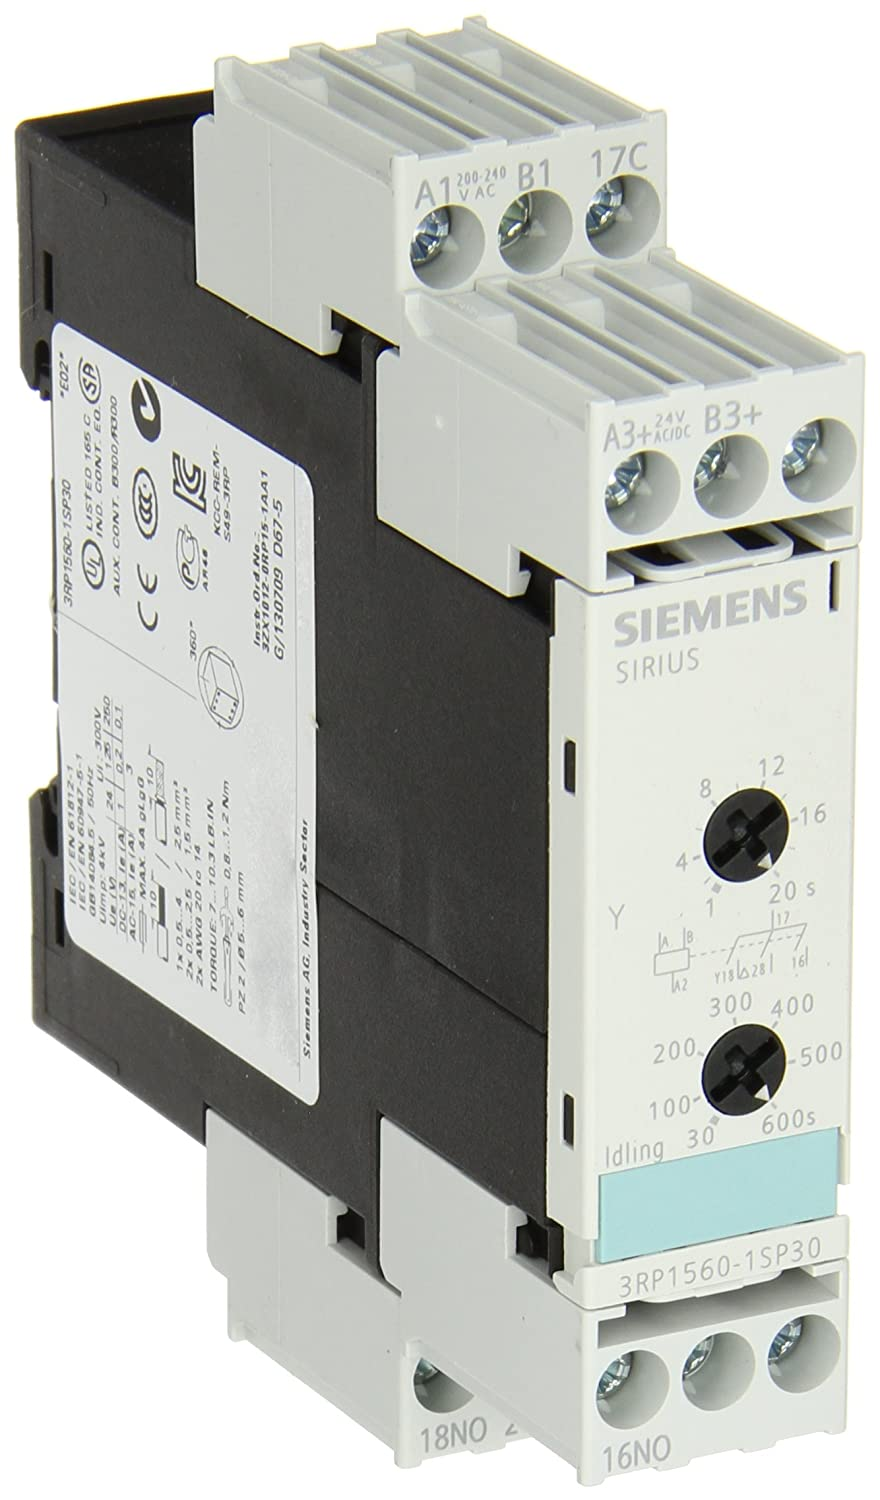 Siemens 3RP1560-1SP30 Solid State Time Relay Industrial Housing 22 5